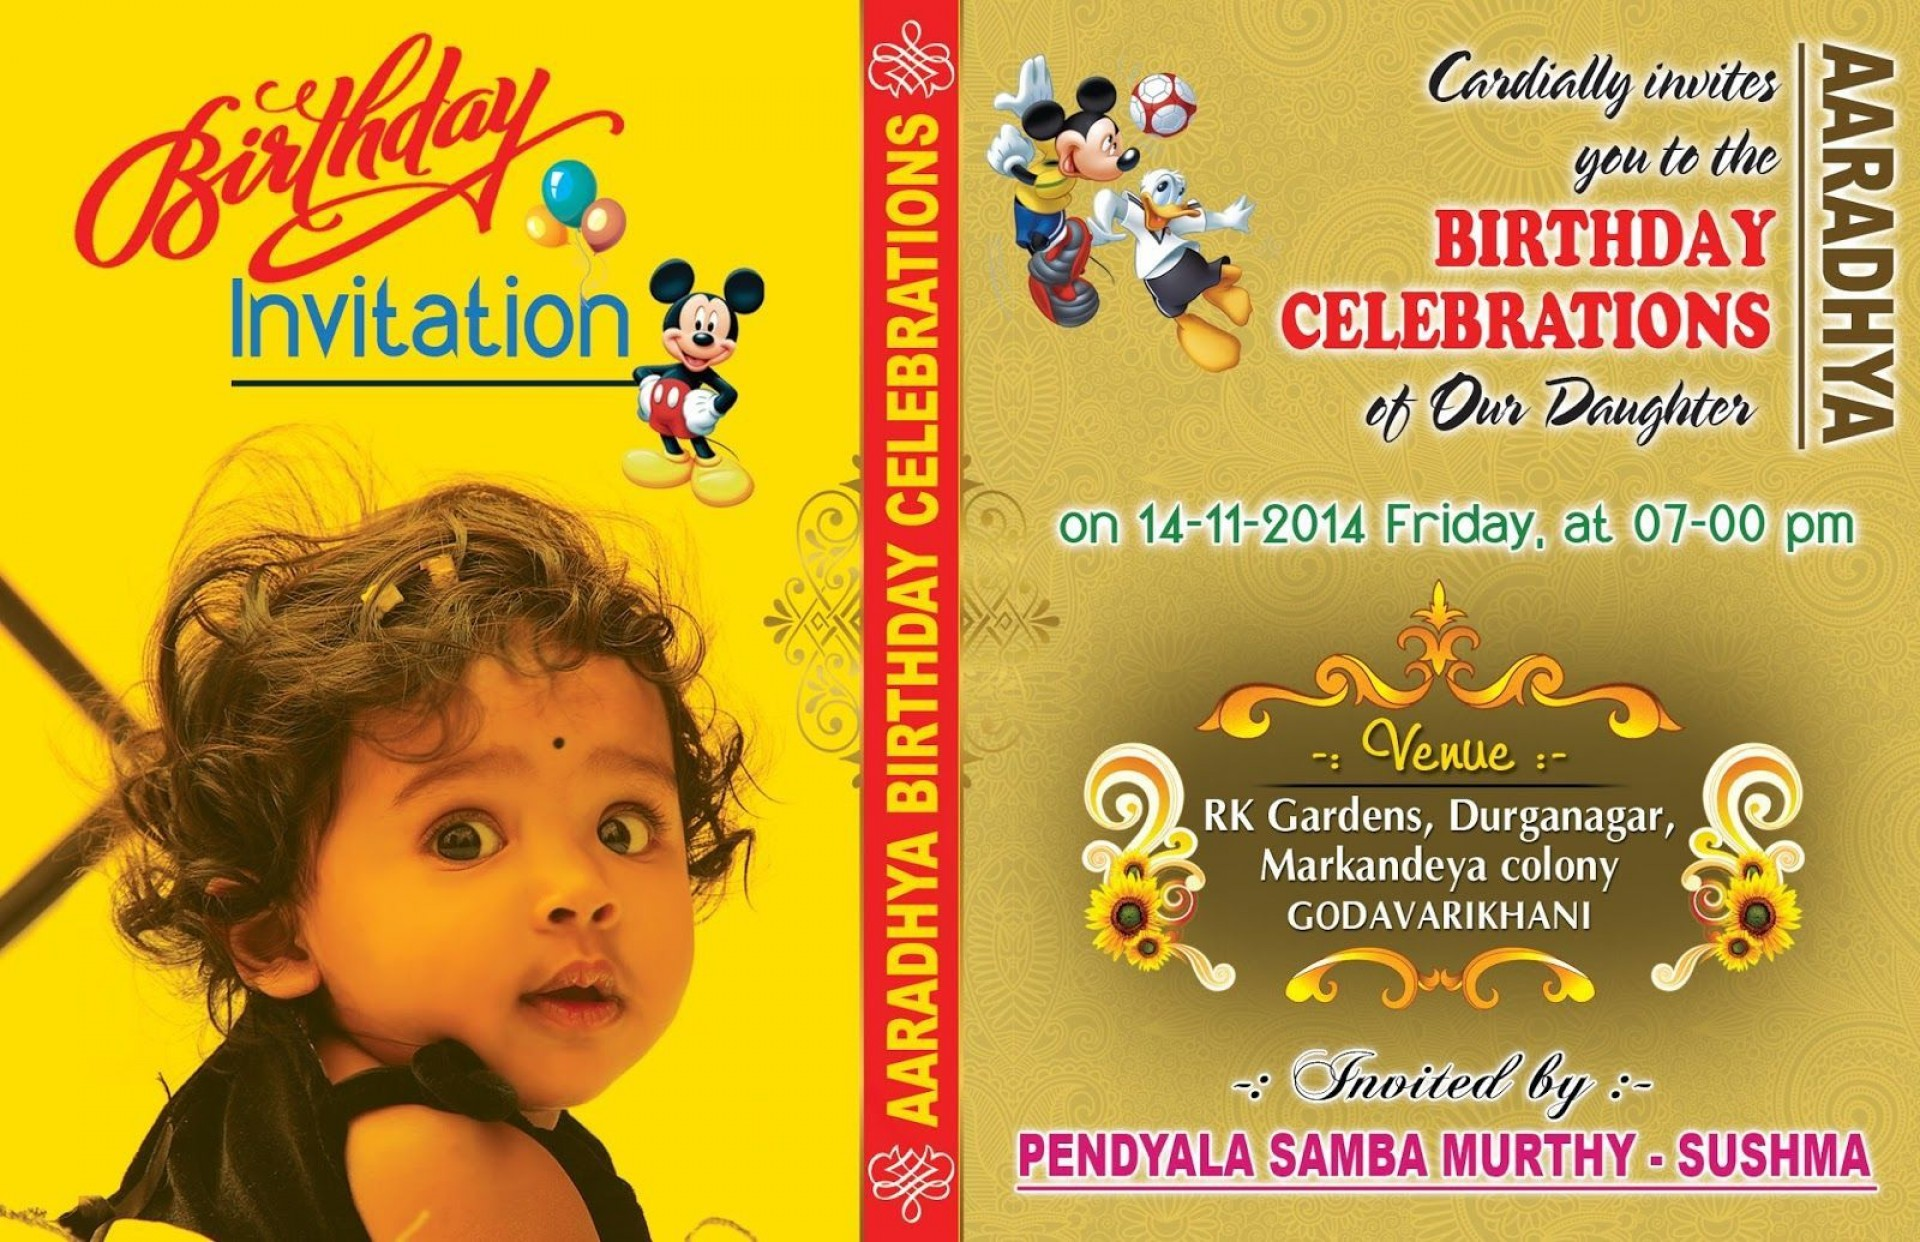 007 Formidable Free Online Birthday Invitation Card Maker With Name And Photo Idea 1920